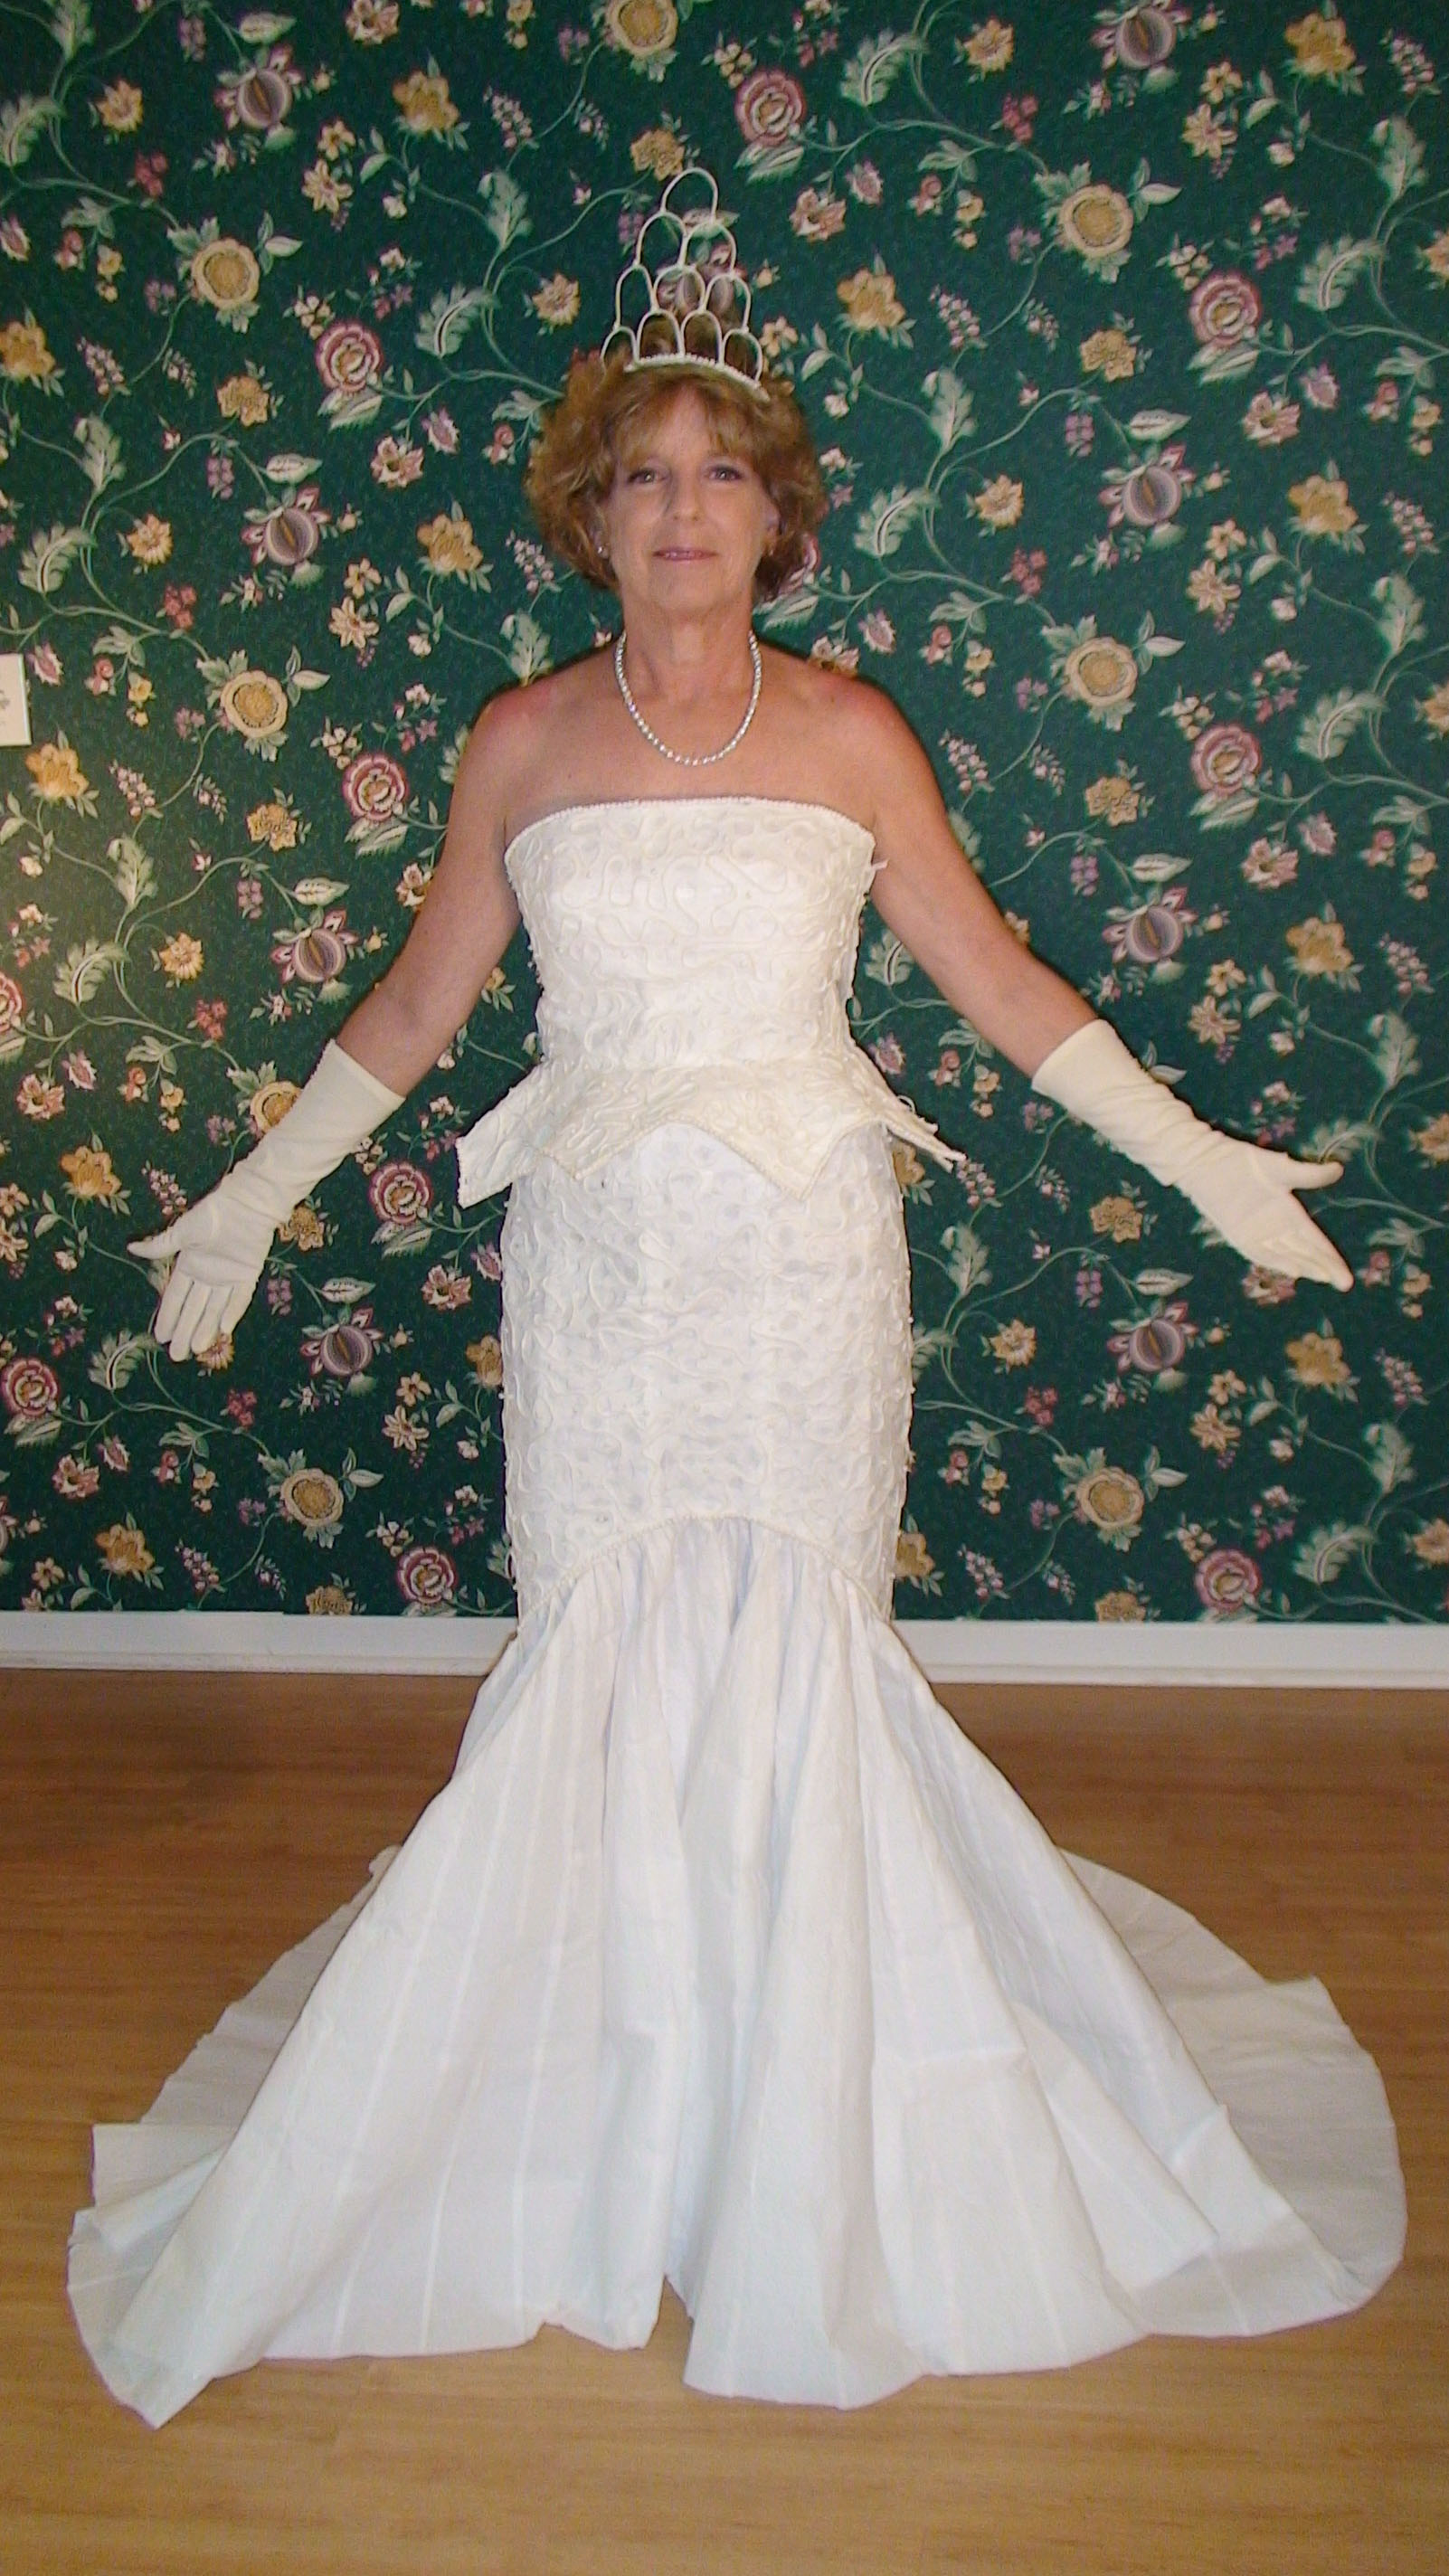 The 2009 toilet paper wedding dress contest for Toilet paper wedding dress 2017